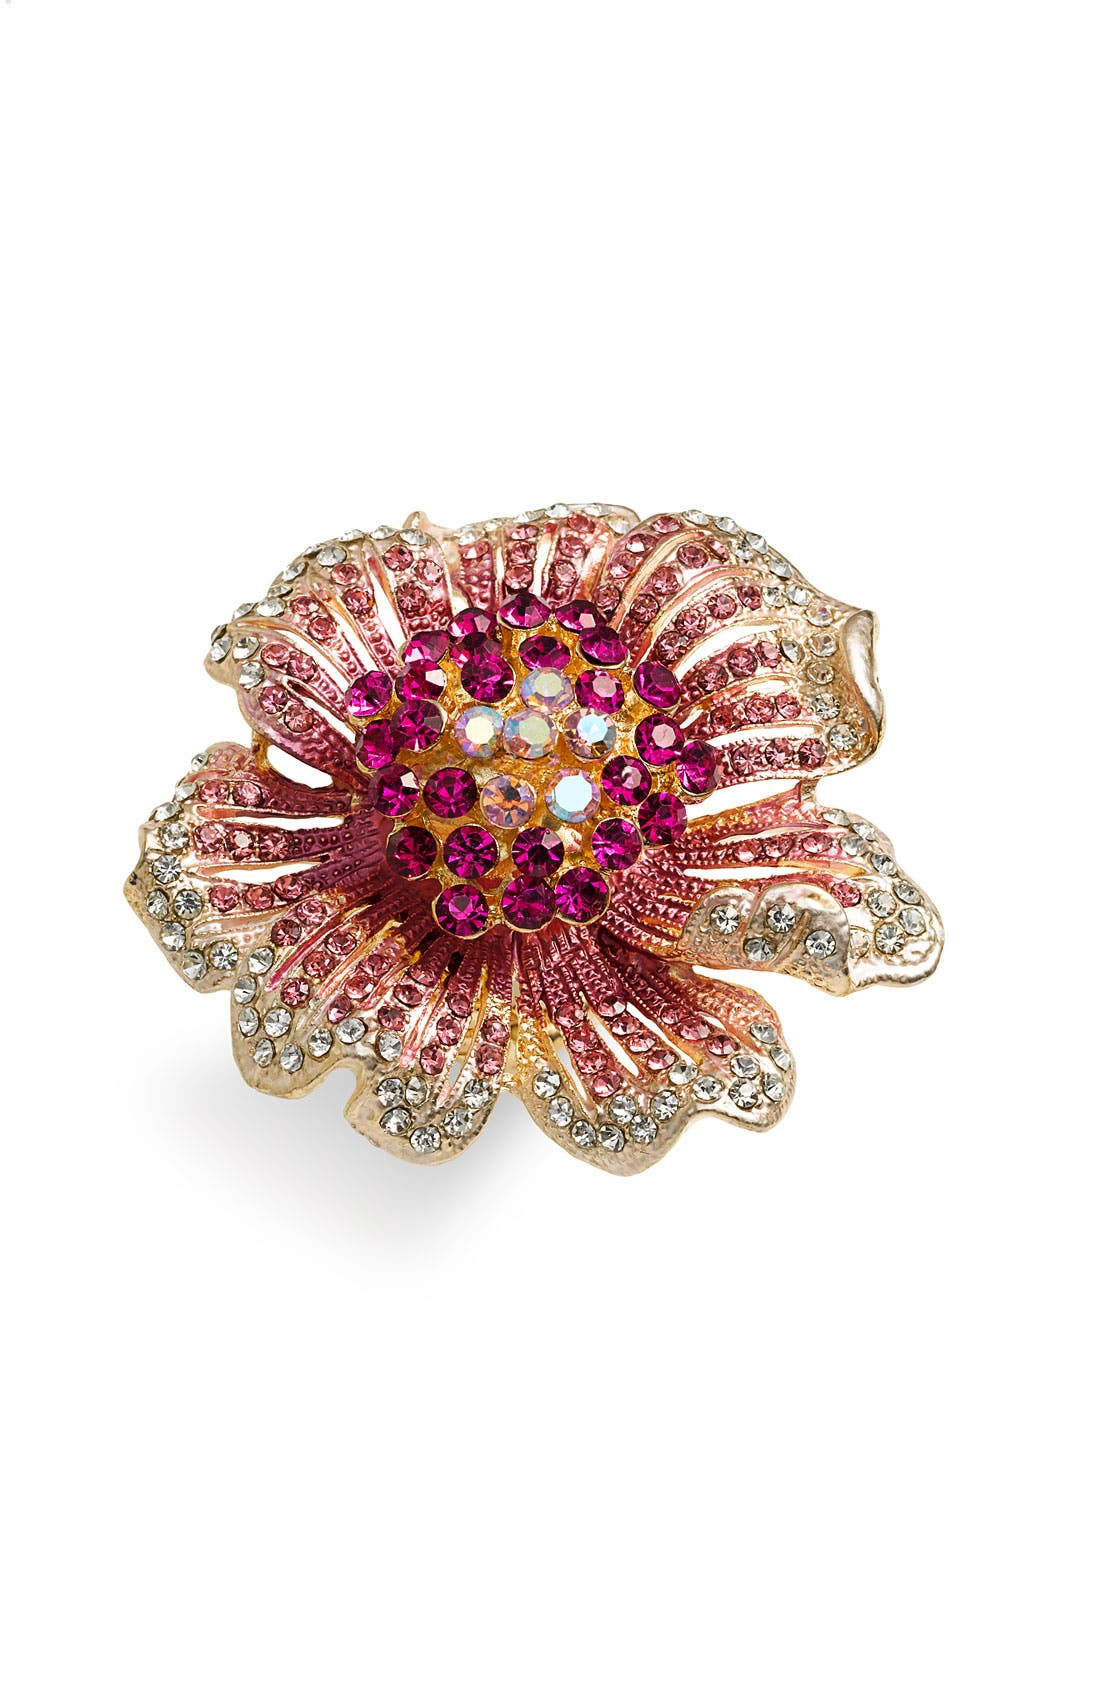 Alternate Image 1 Selected - Cara Accessories 'Critters' Large Flower Stretch Ring